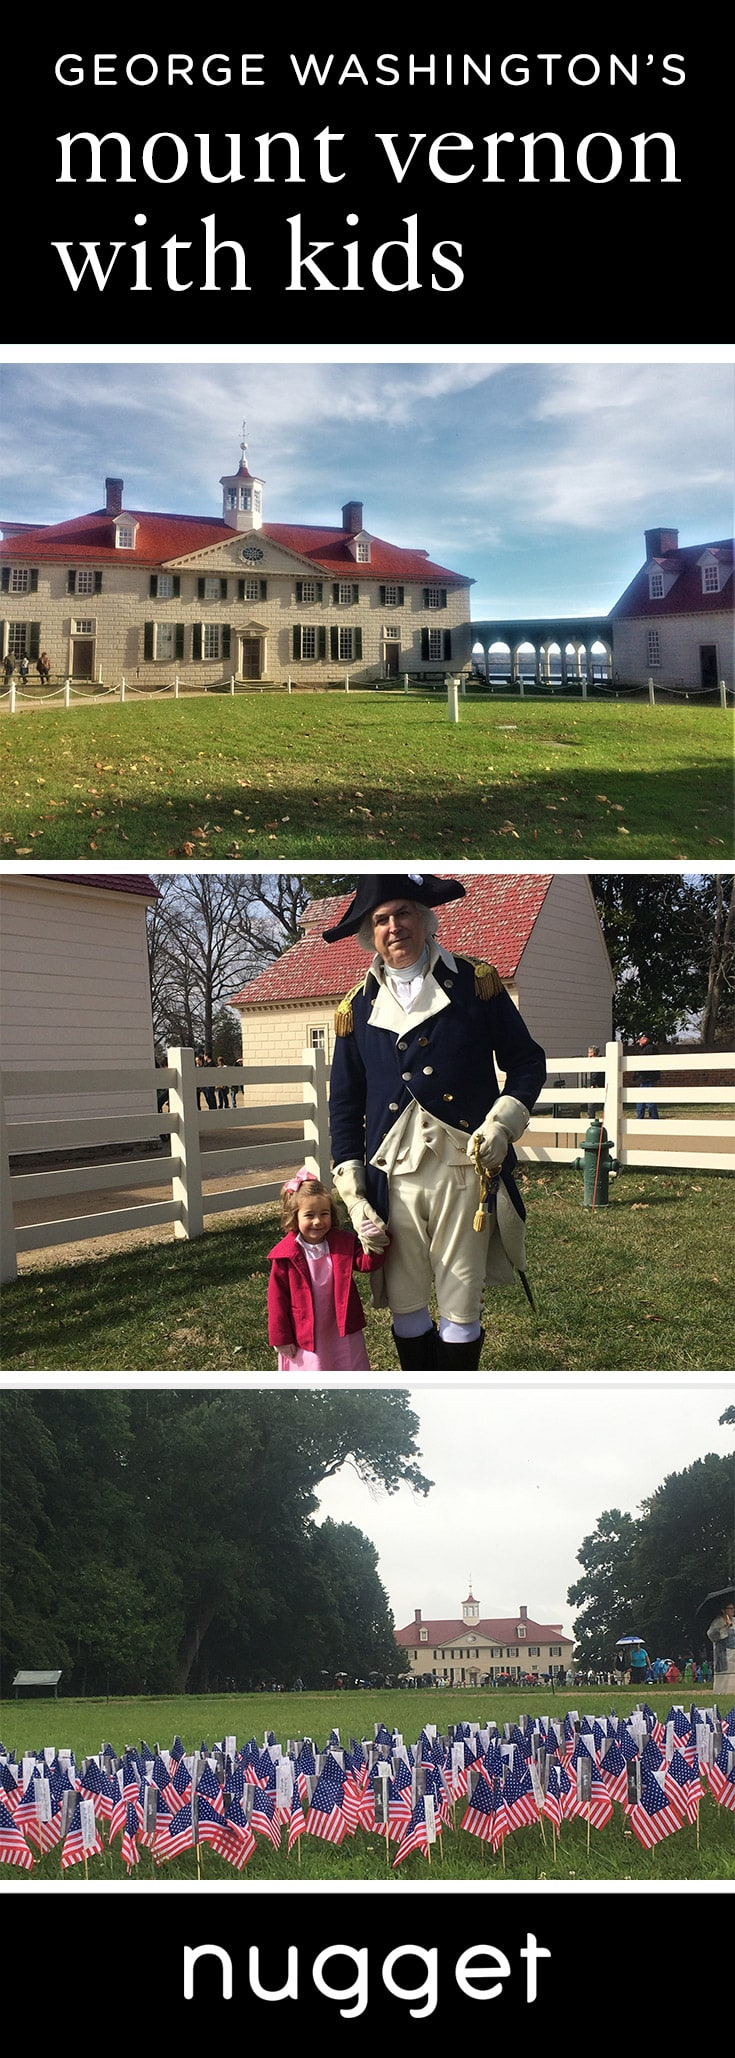 At George Washington's Mount Vernon with Kids